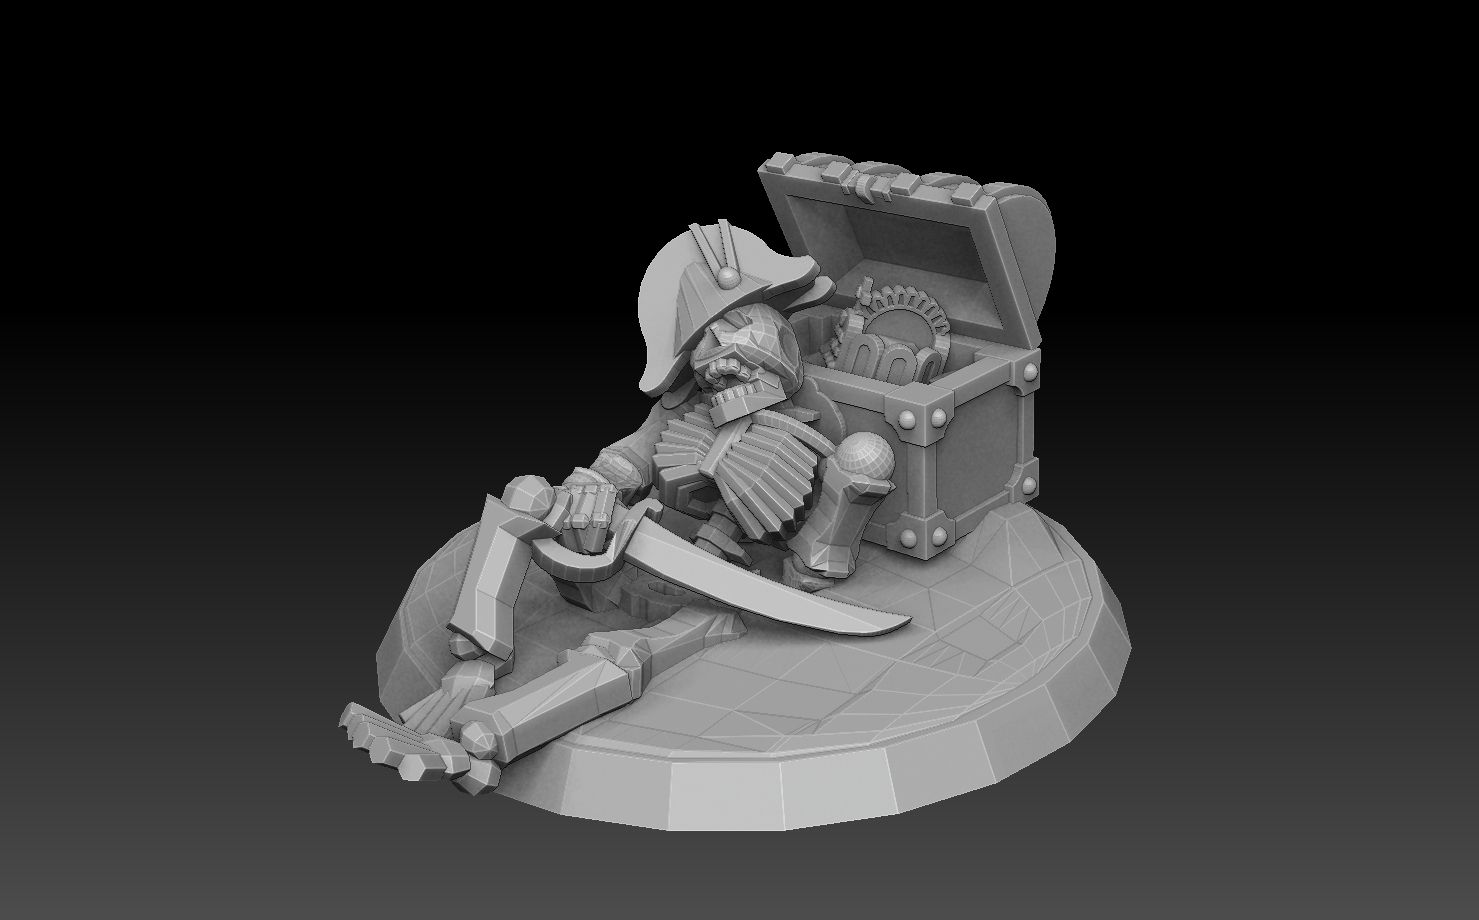 treasure chestskele2.jpg Download STL file Undersea Bases Stems and Terrain 28mm • 3D printing object, SharedogMiniatures